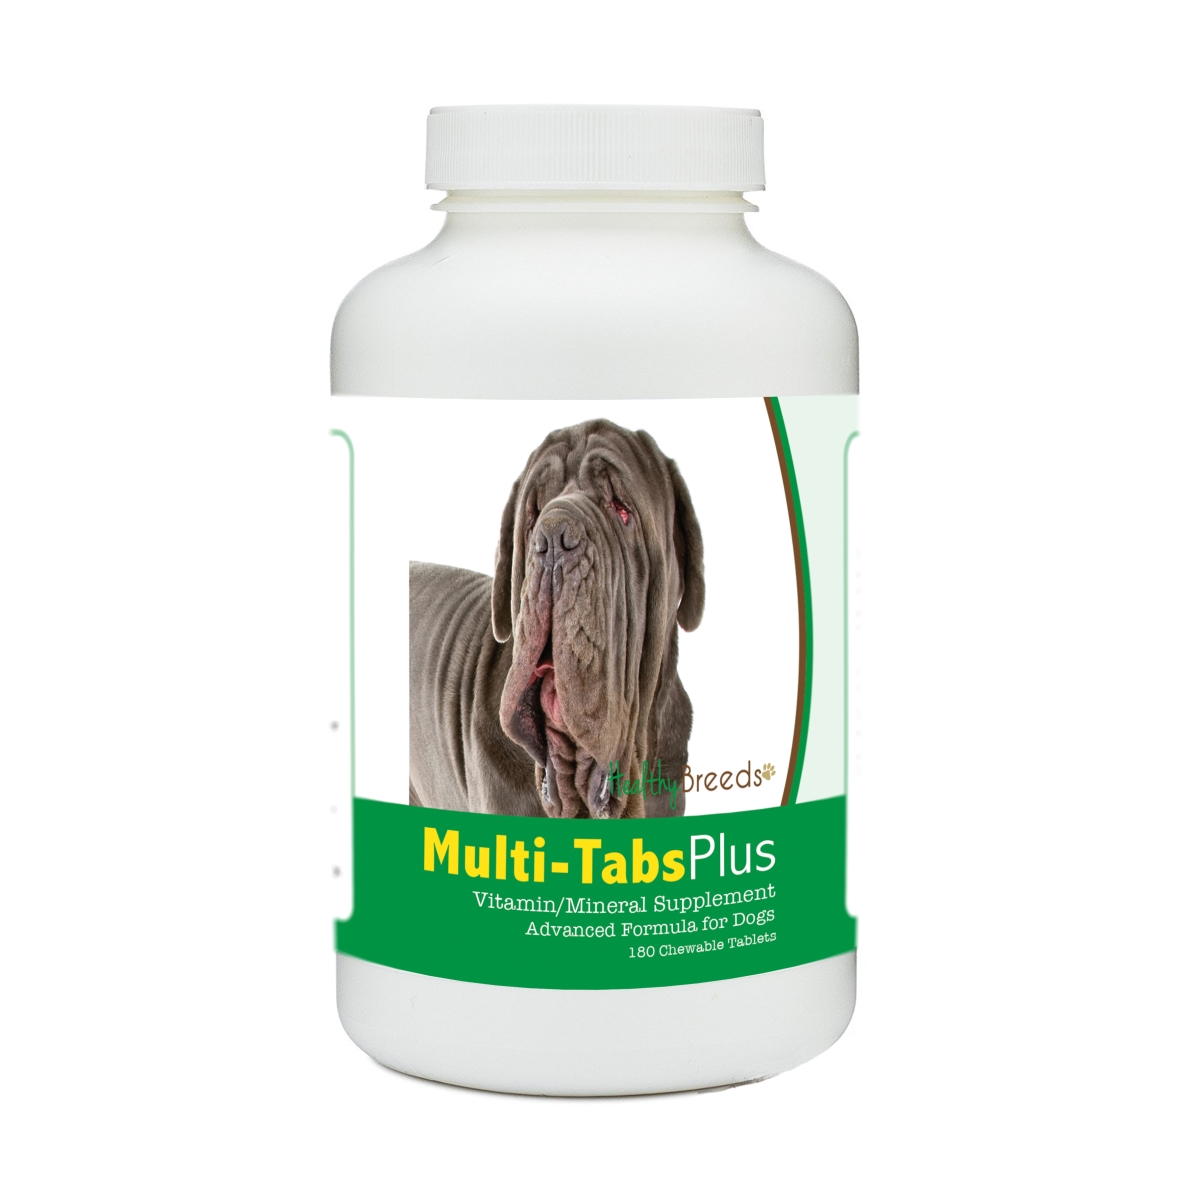 Healthy Breeds 840235171065 Neapolitan Mastiff Multi-Tabs Plus Chewable Tablets - 180 Count